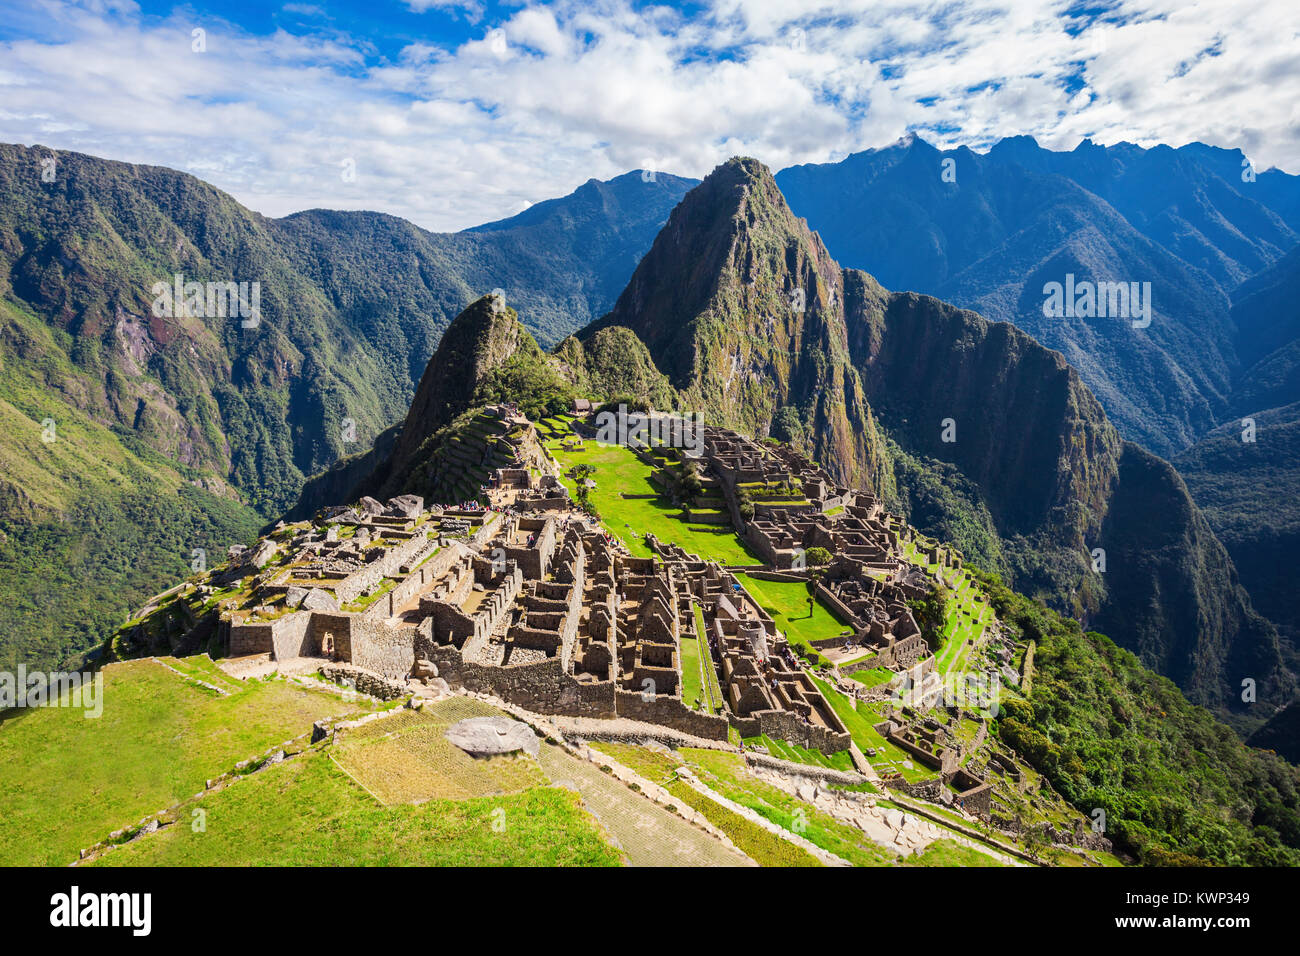 Machu Picchu, a UNESCO World Heritage Site in 1983. One of the New Seven Wonders of the World. - Stock Image